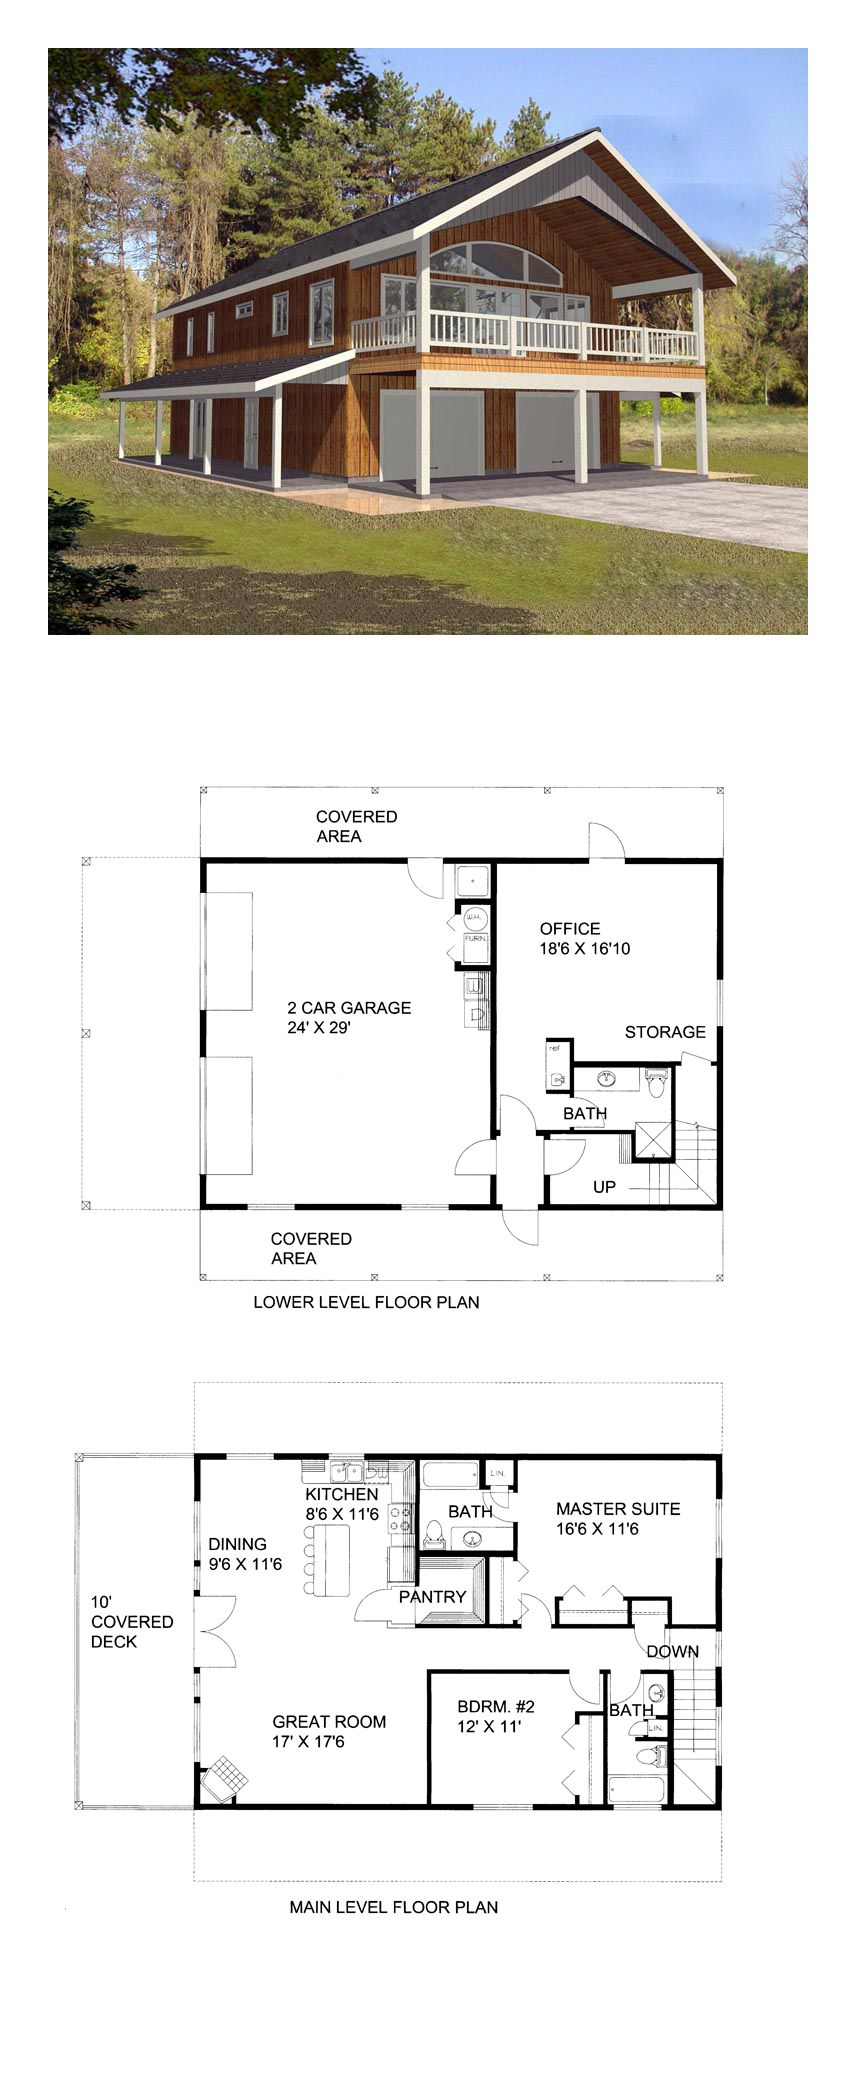 Garage apartment plan 85372 total living area 1901 sq for Garage plans with apartment one level